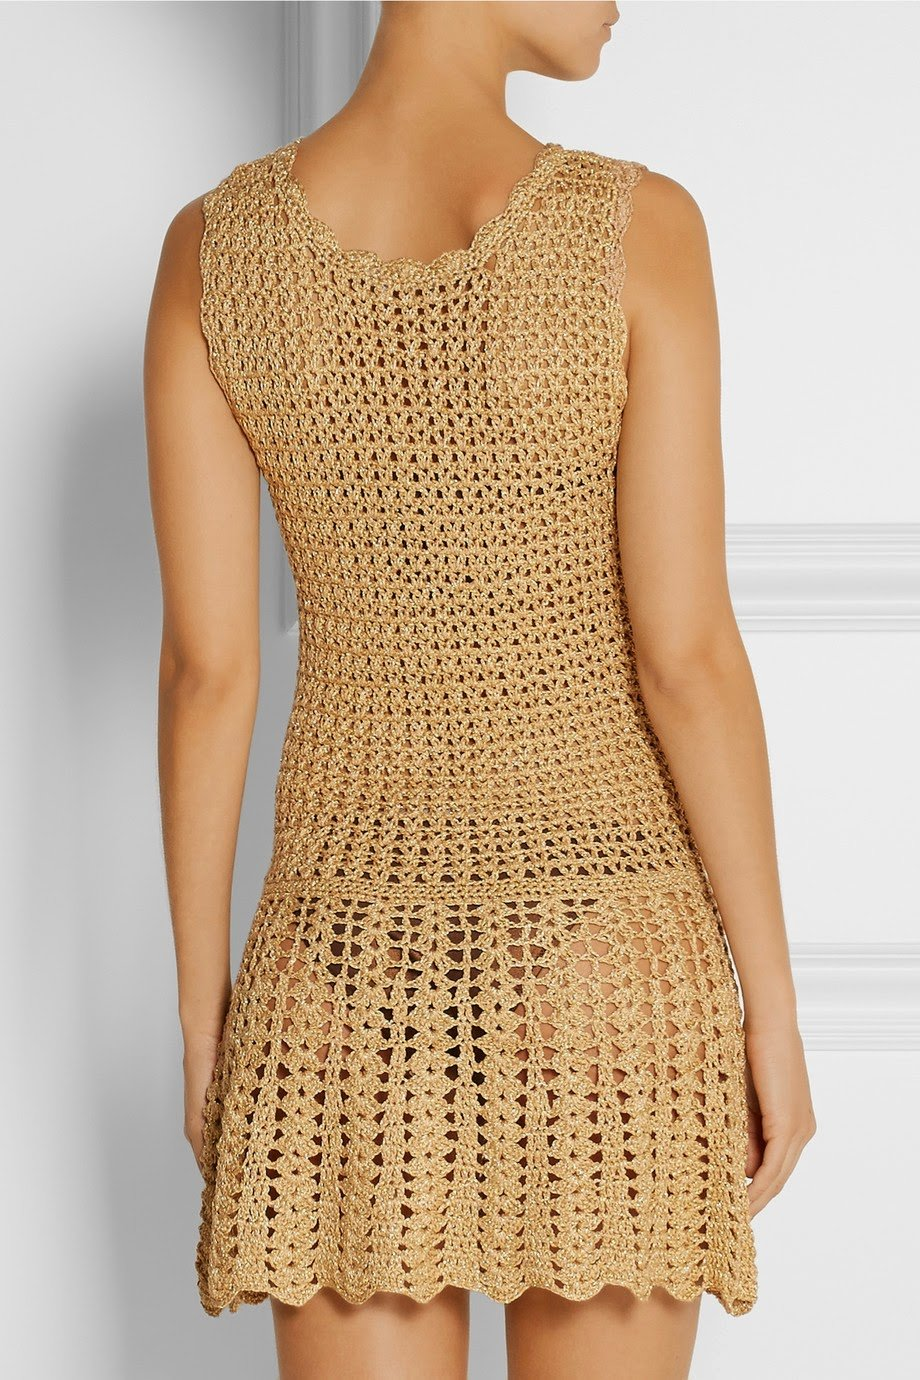 beautiful crochet dress for summer